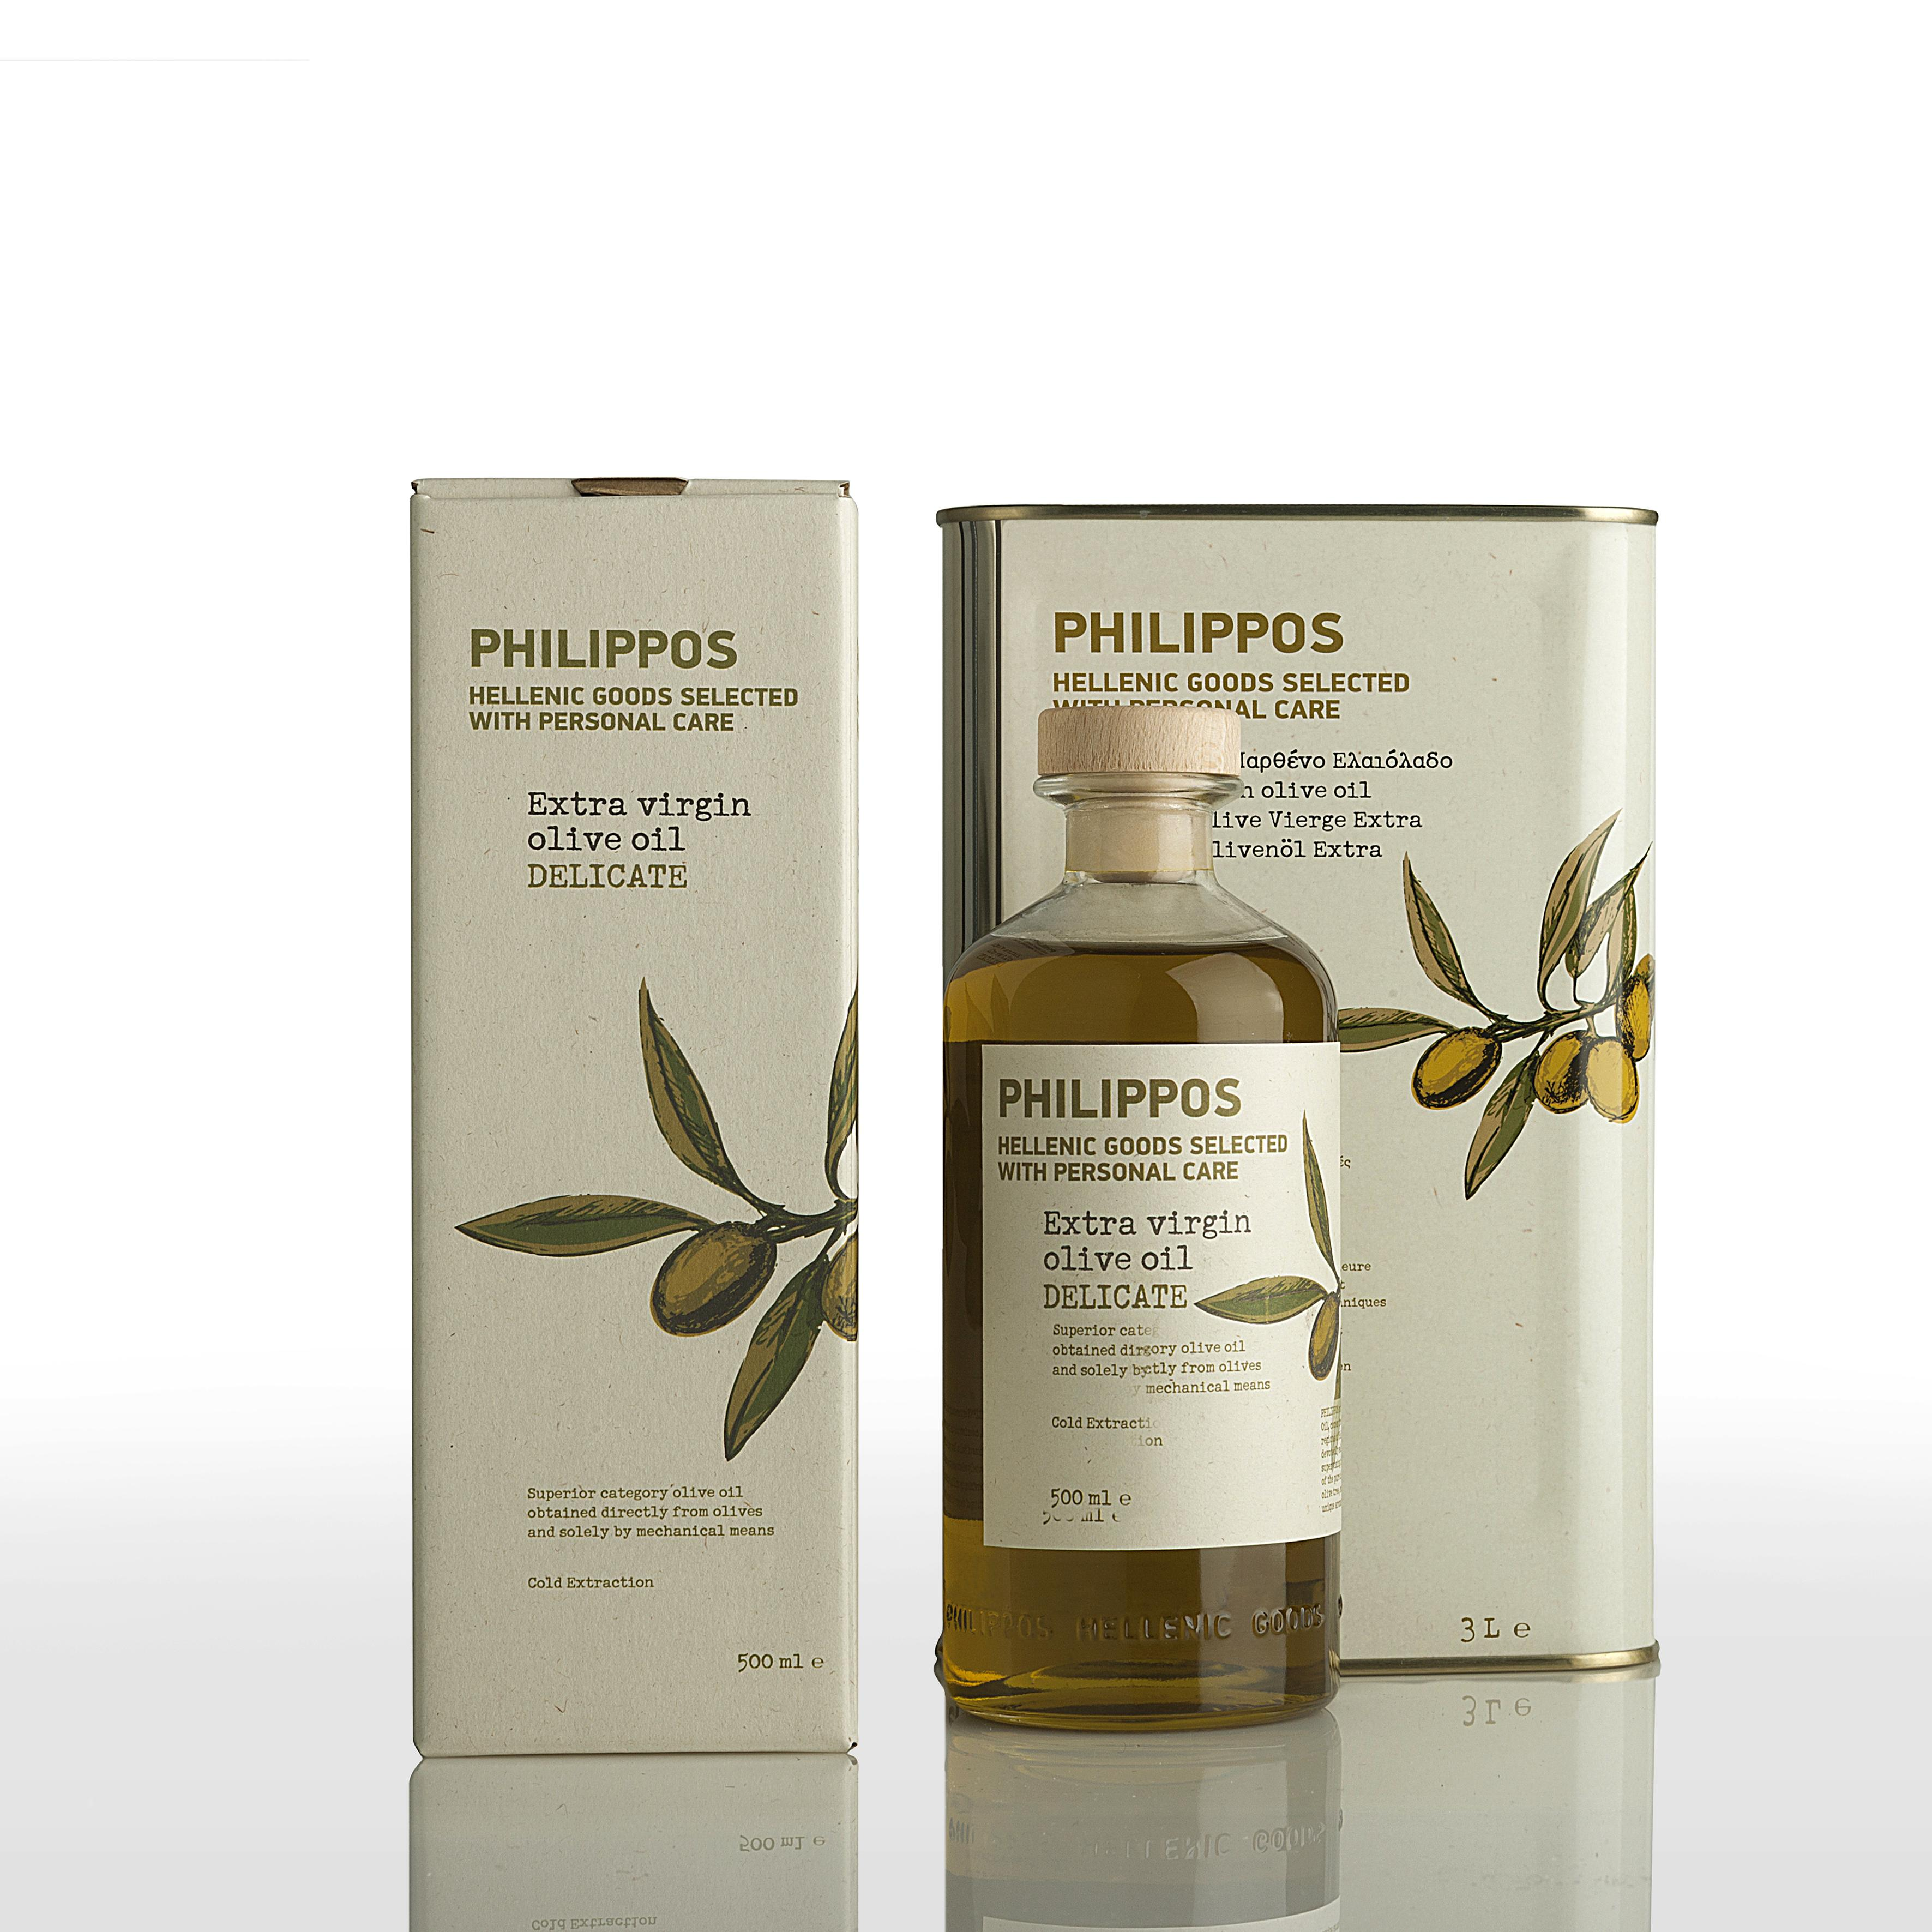 PHILIPPOS DELICATE Extra Virgin Olive Oil 500ml 3L